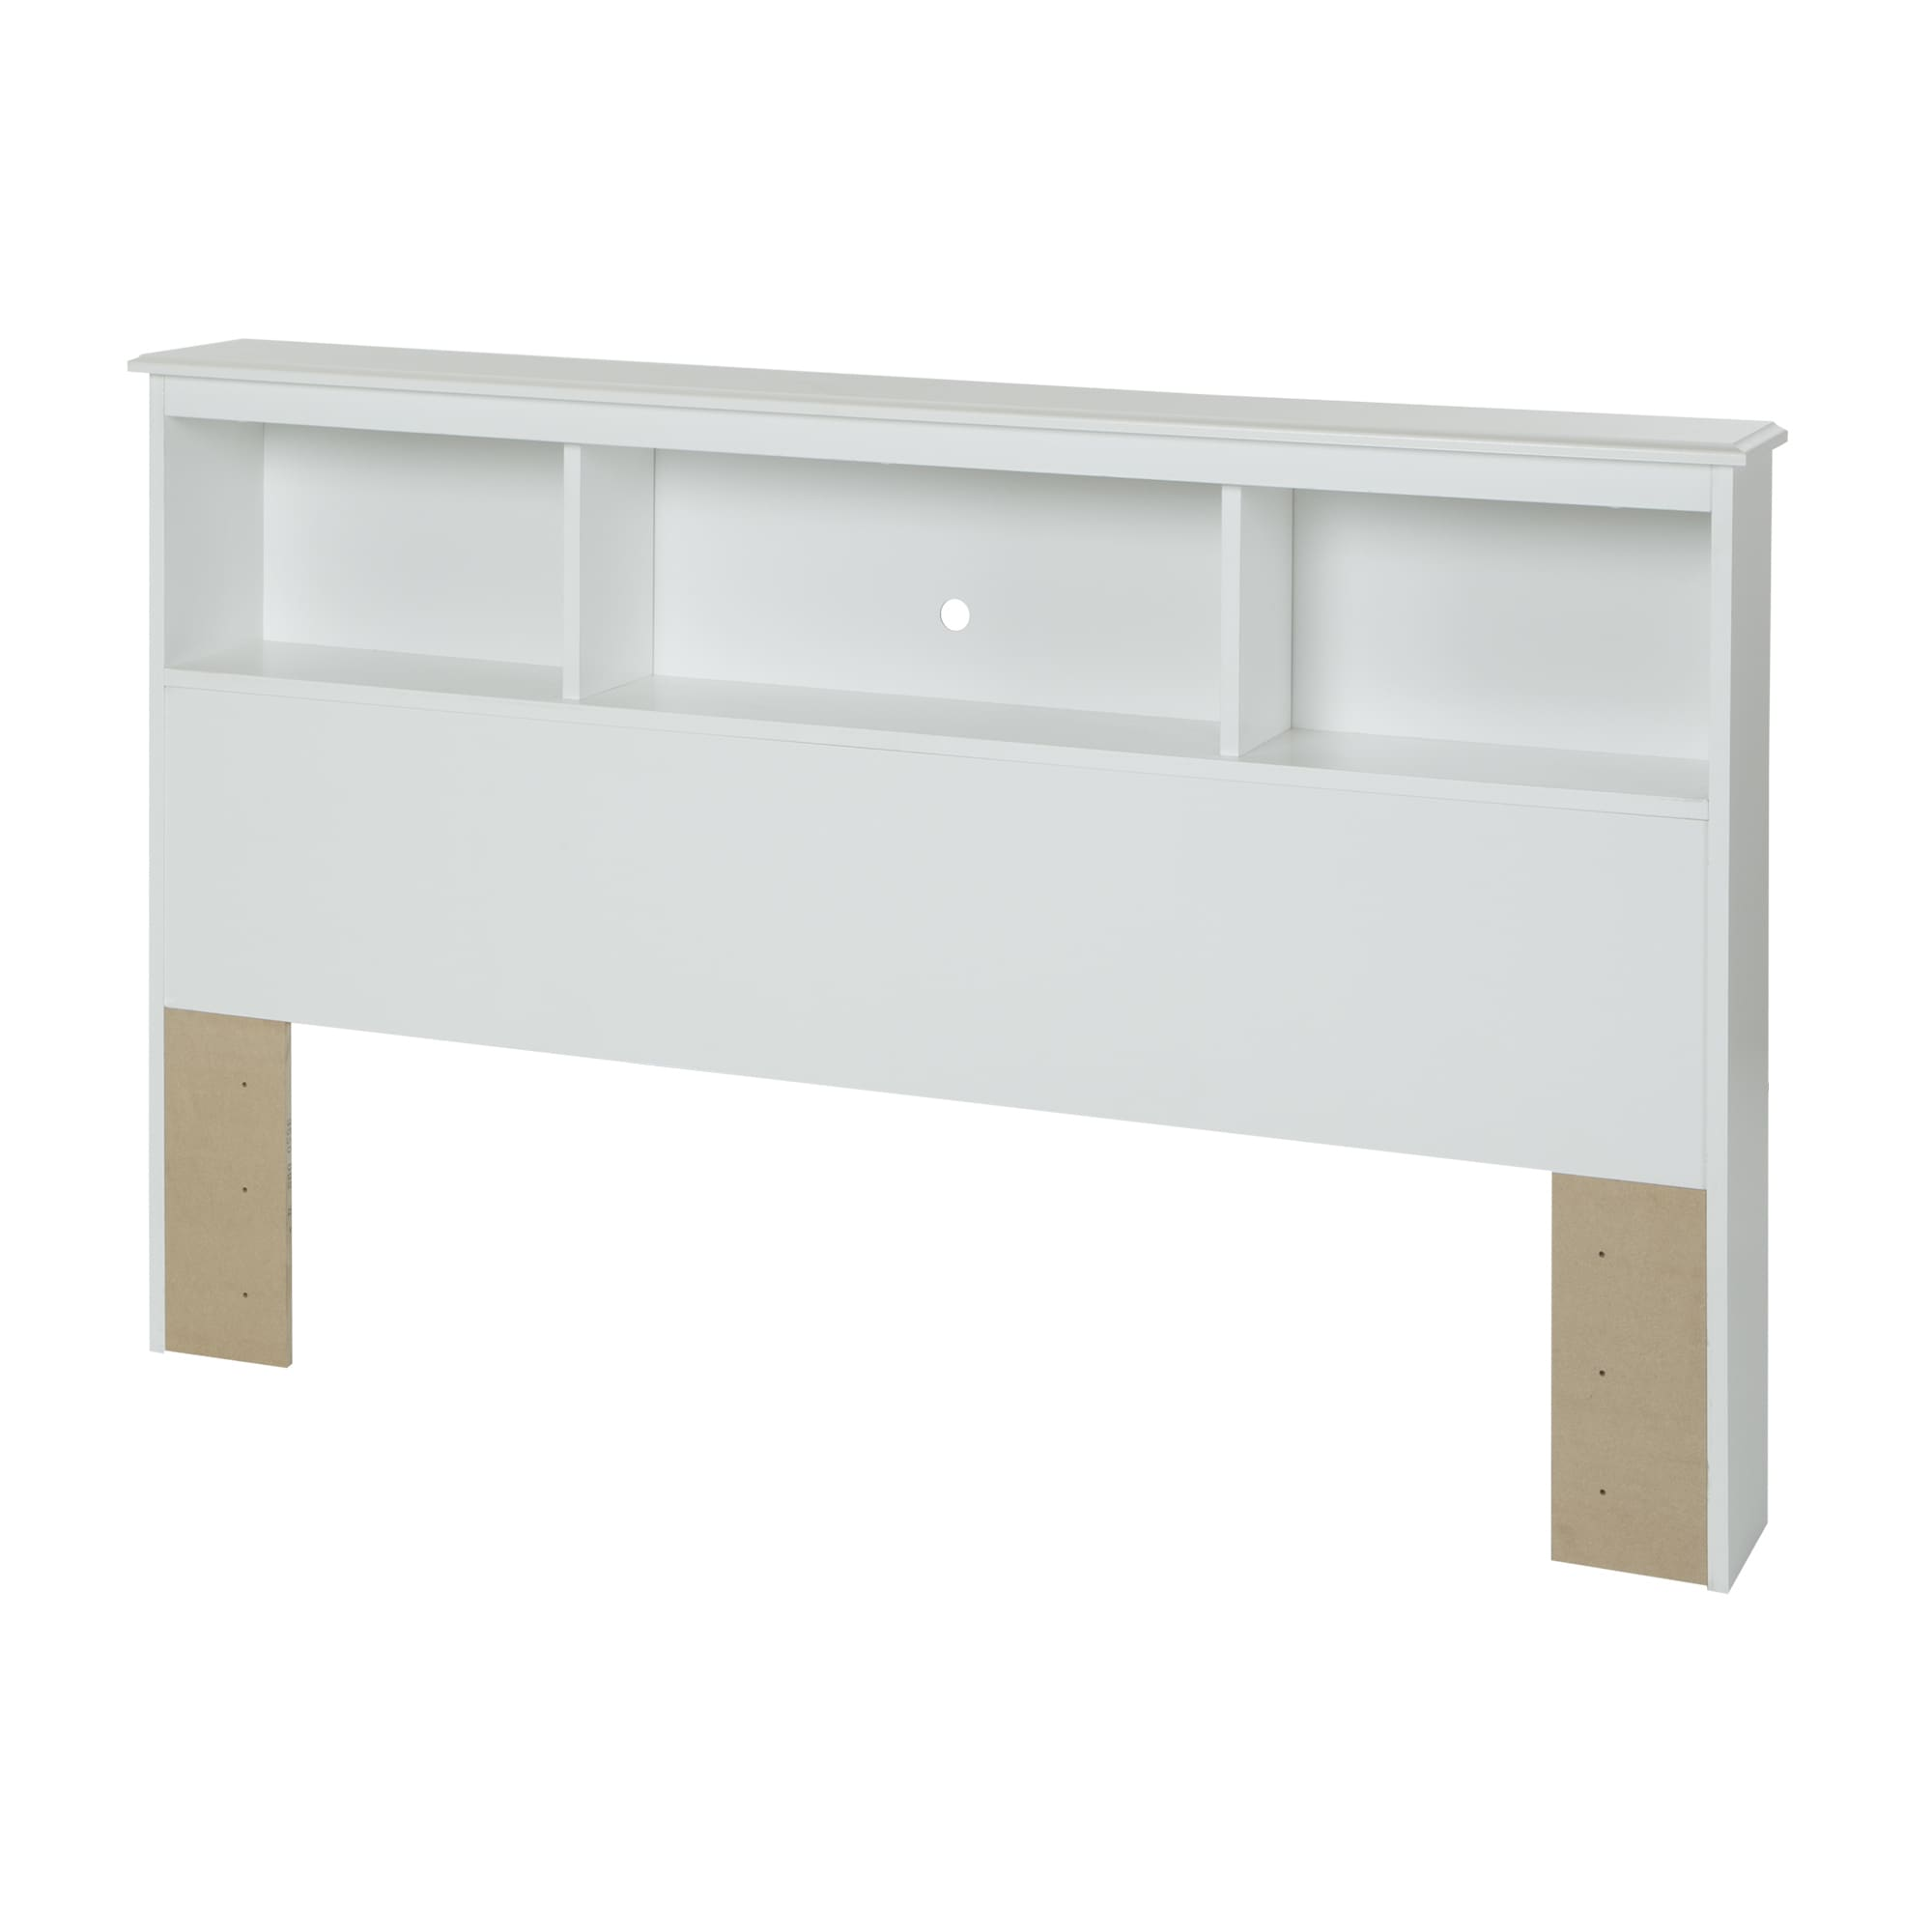 Shop full size 54 inch white bookcase headboard free shipping today overstock com 10879427